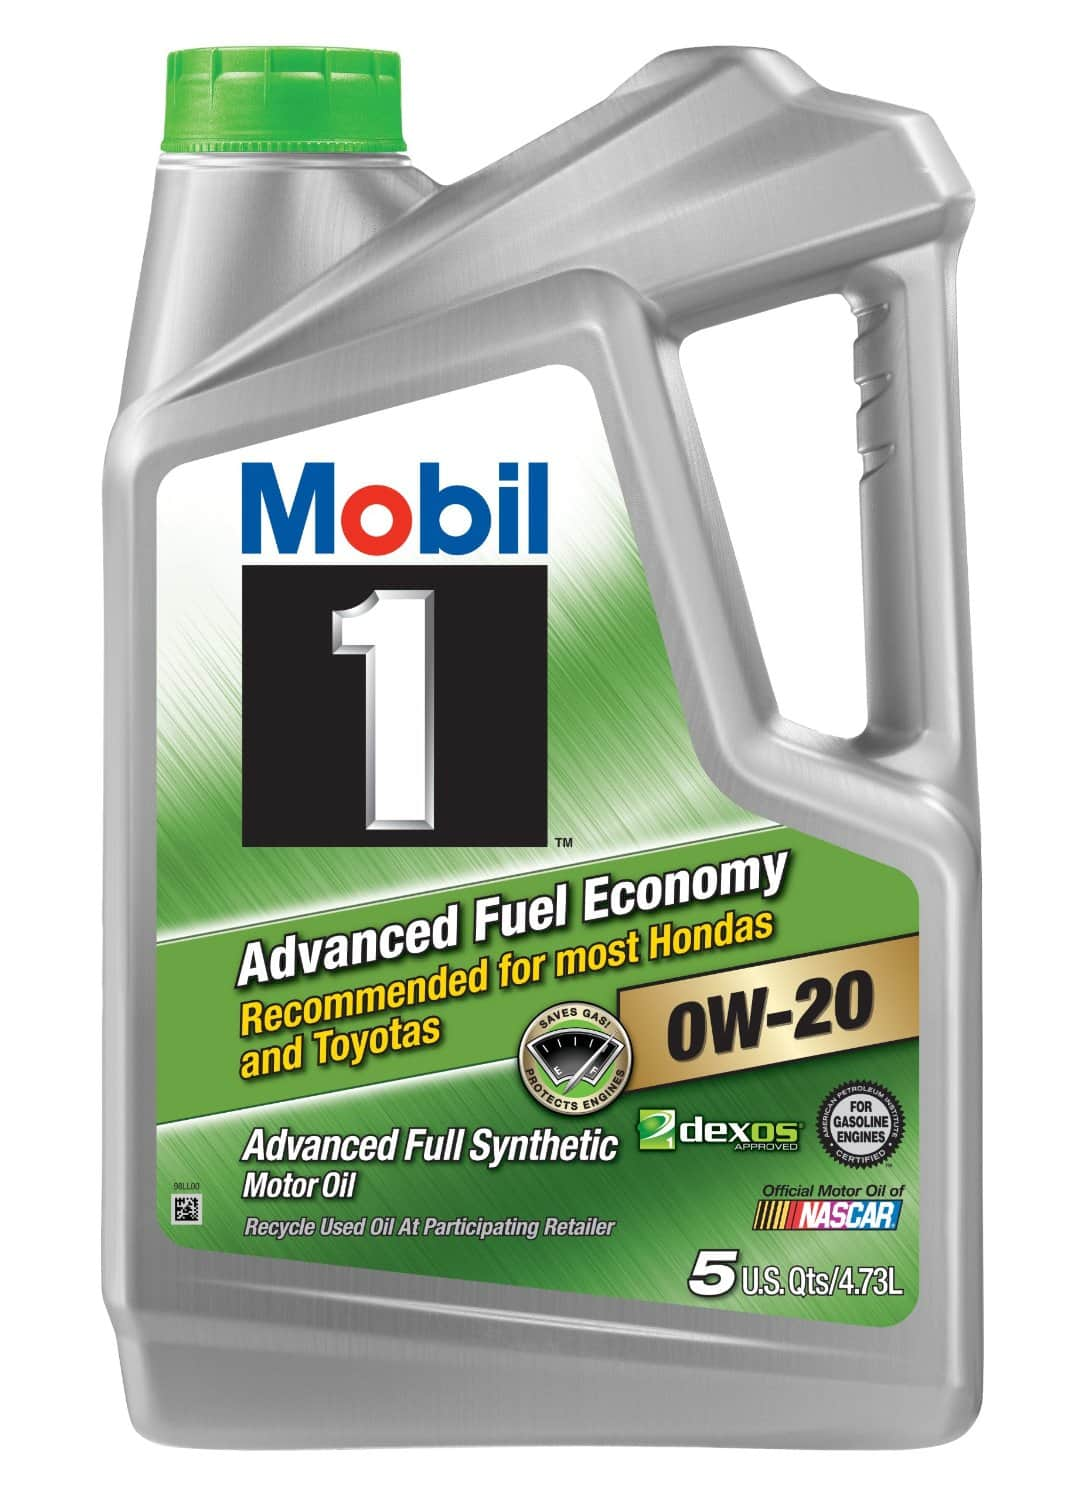 5 Quart Mobil 1 Full Synthetic Motor Oil (Various Models & Grades)  From $13.50 after $12 Rebate + Free Store Pickup